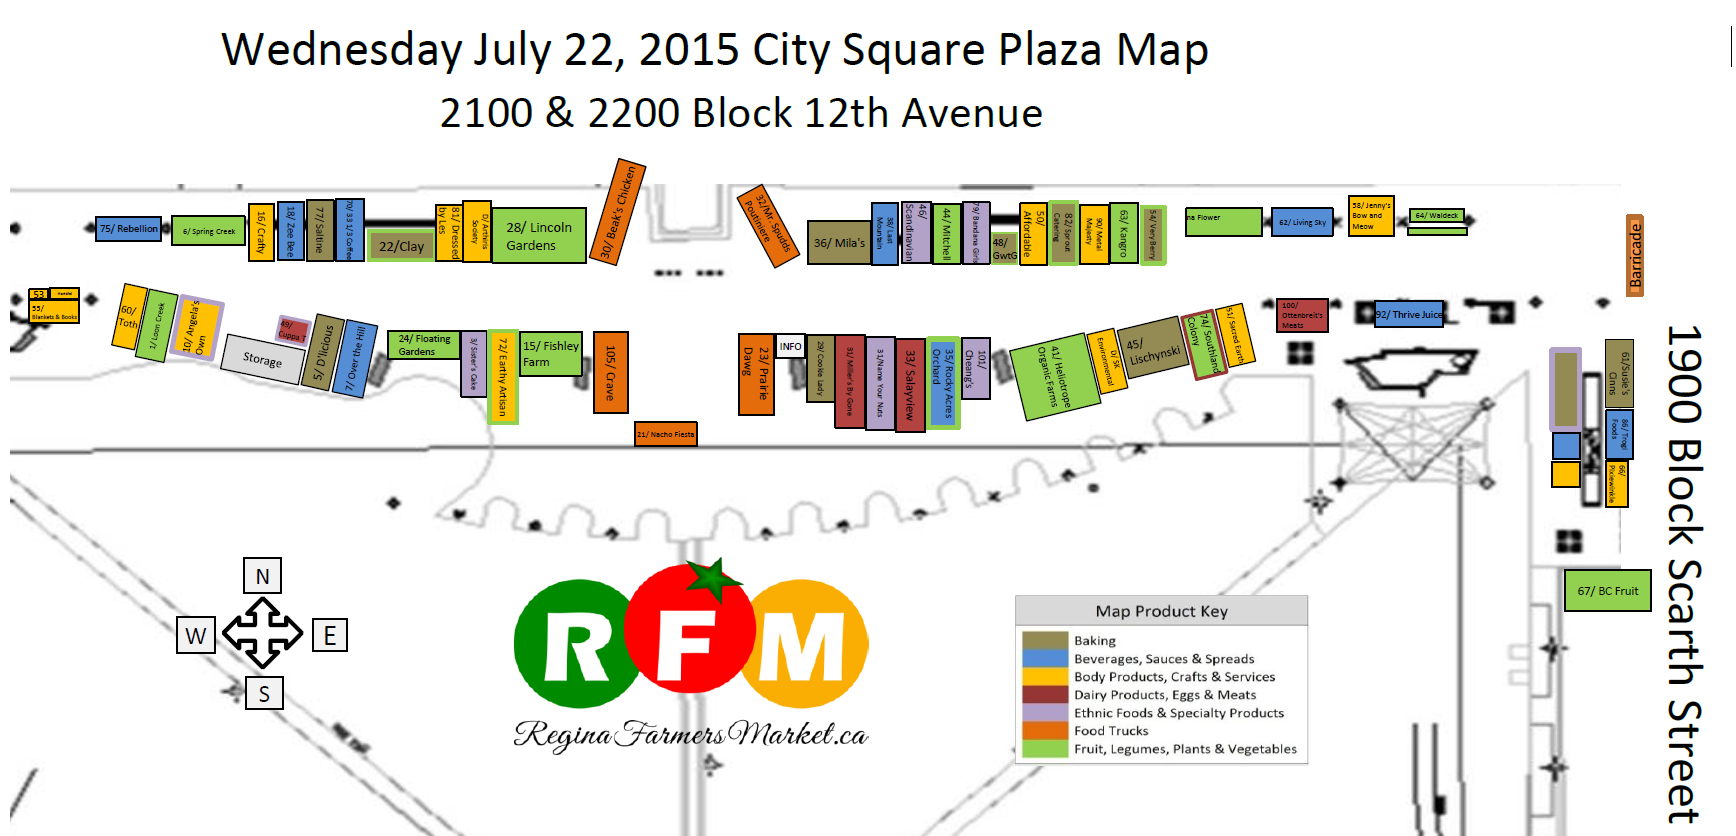 Street Beets July 21st, 2015: Cherry Trees, Cold Brew Coffee, and Vendor Map! - Image 3